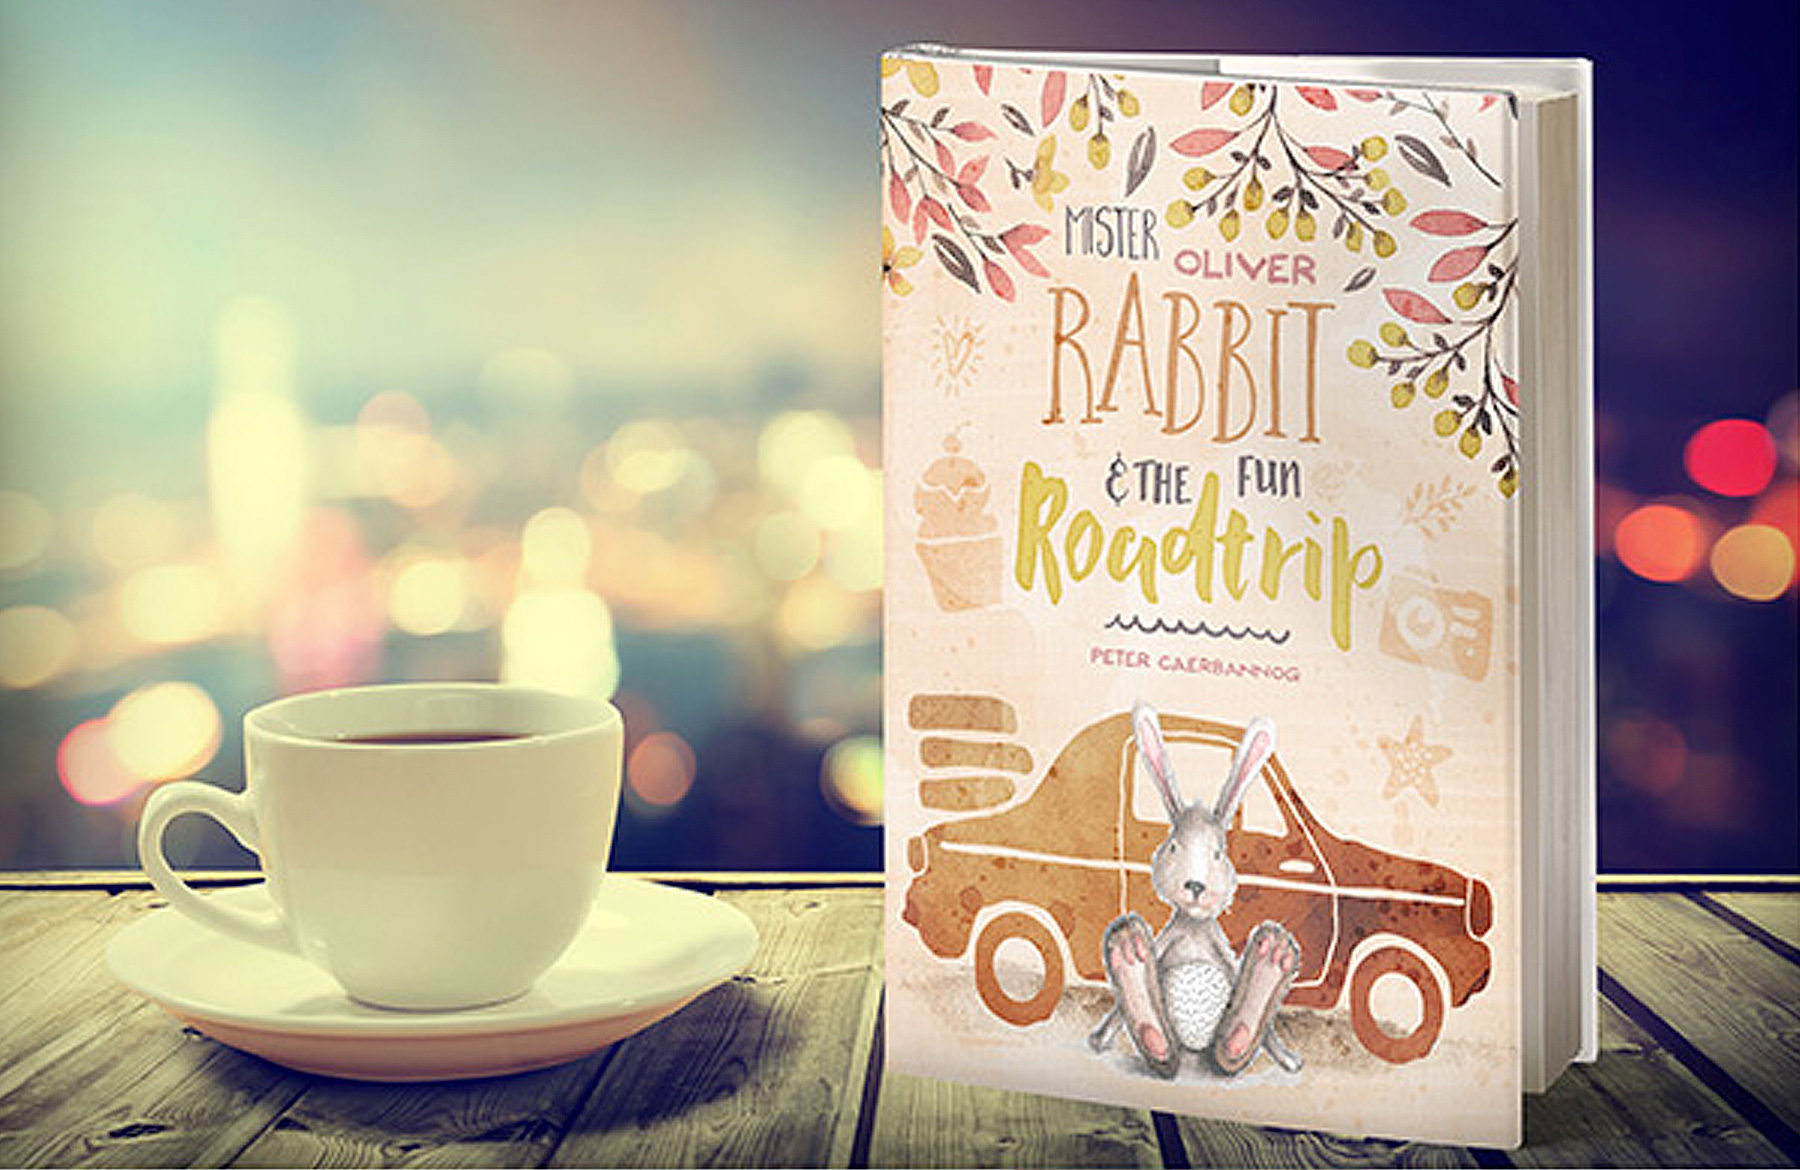 Watercolor book covers - Design A Charming Children S Book Cover